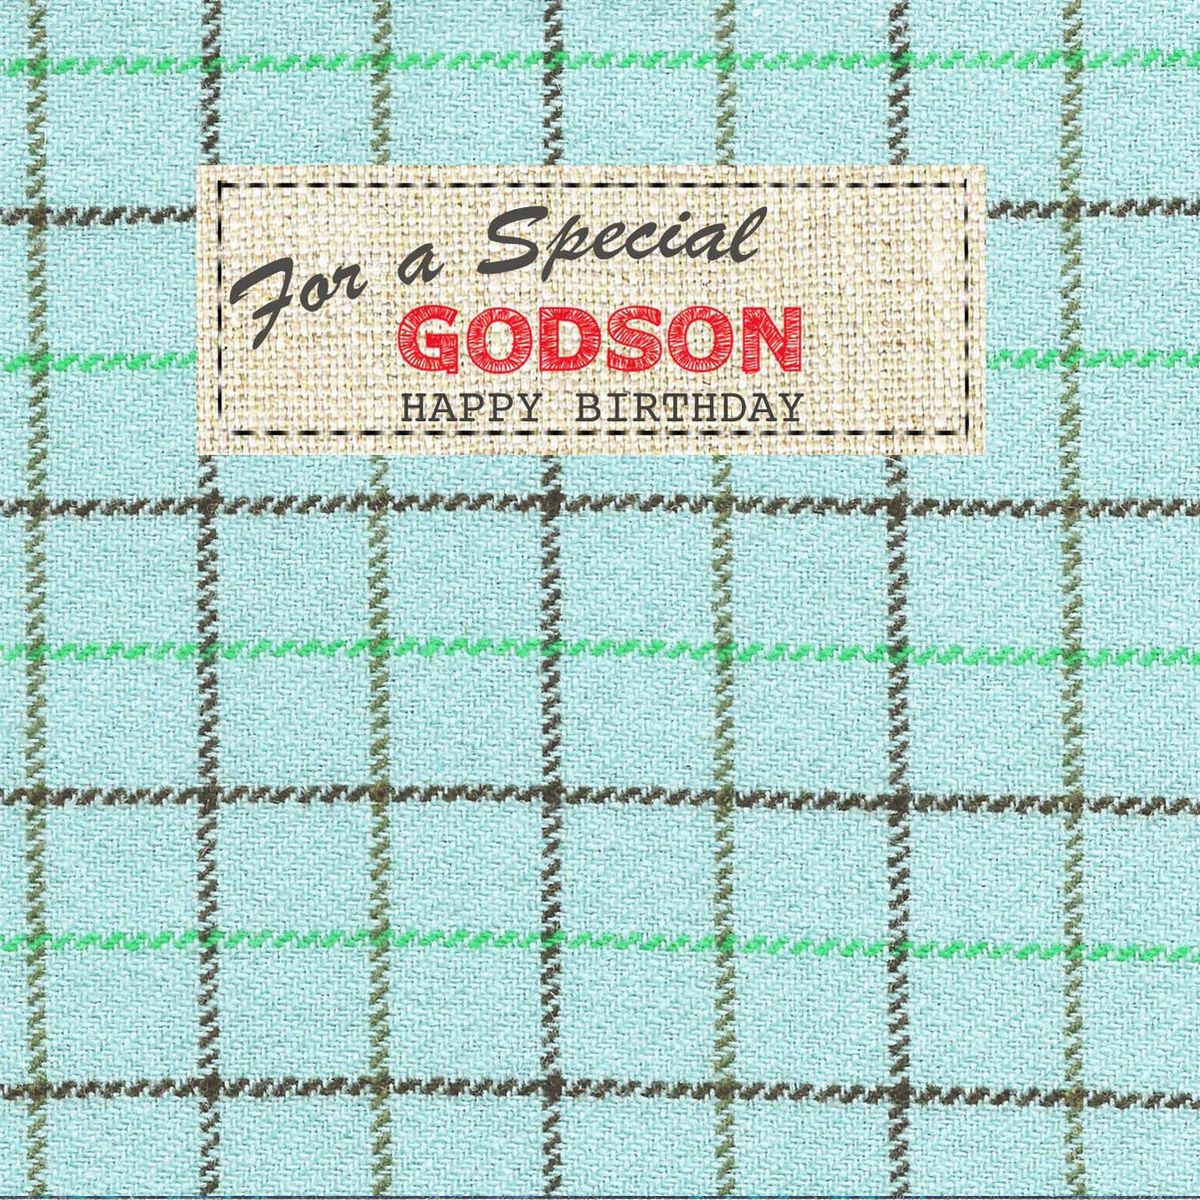 Hand Finished Special Godson Birthday Card Karenza Paperie